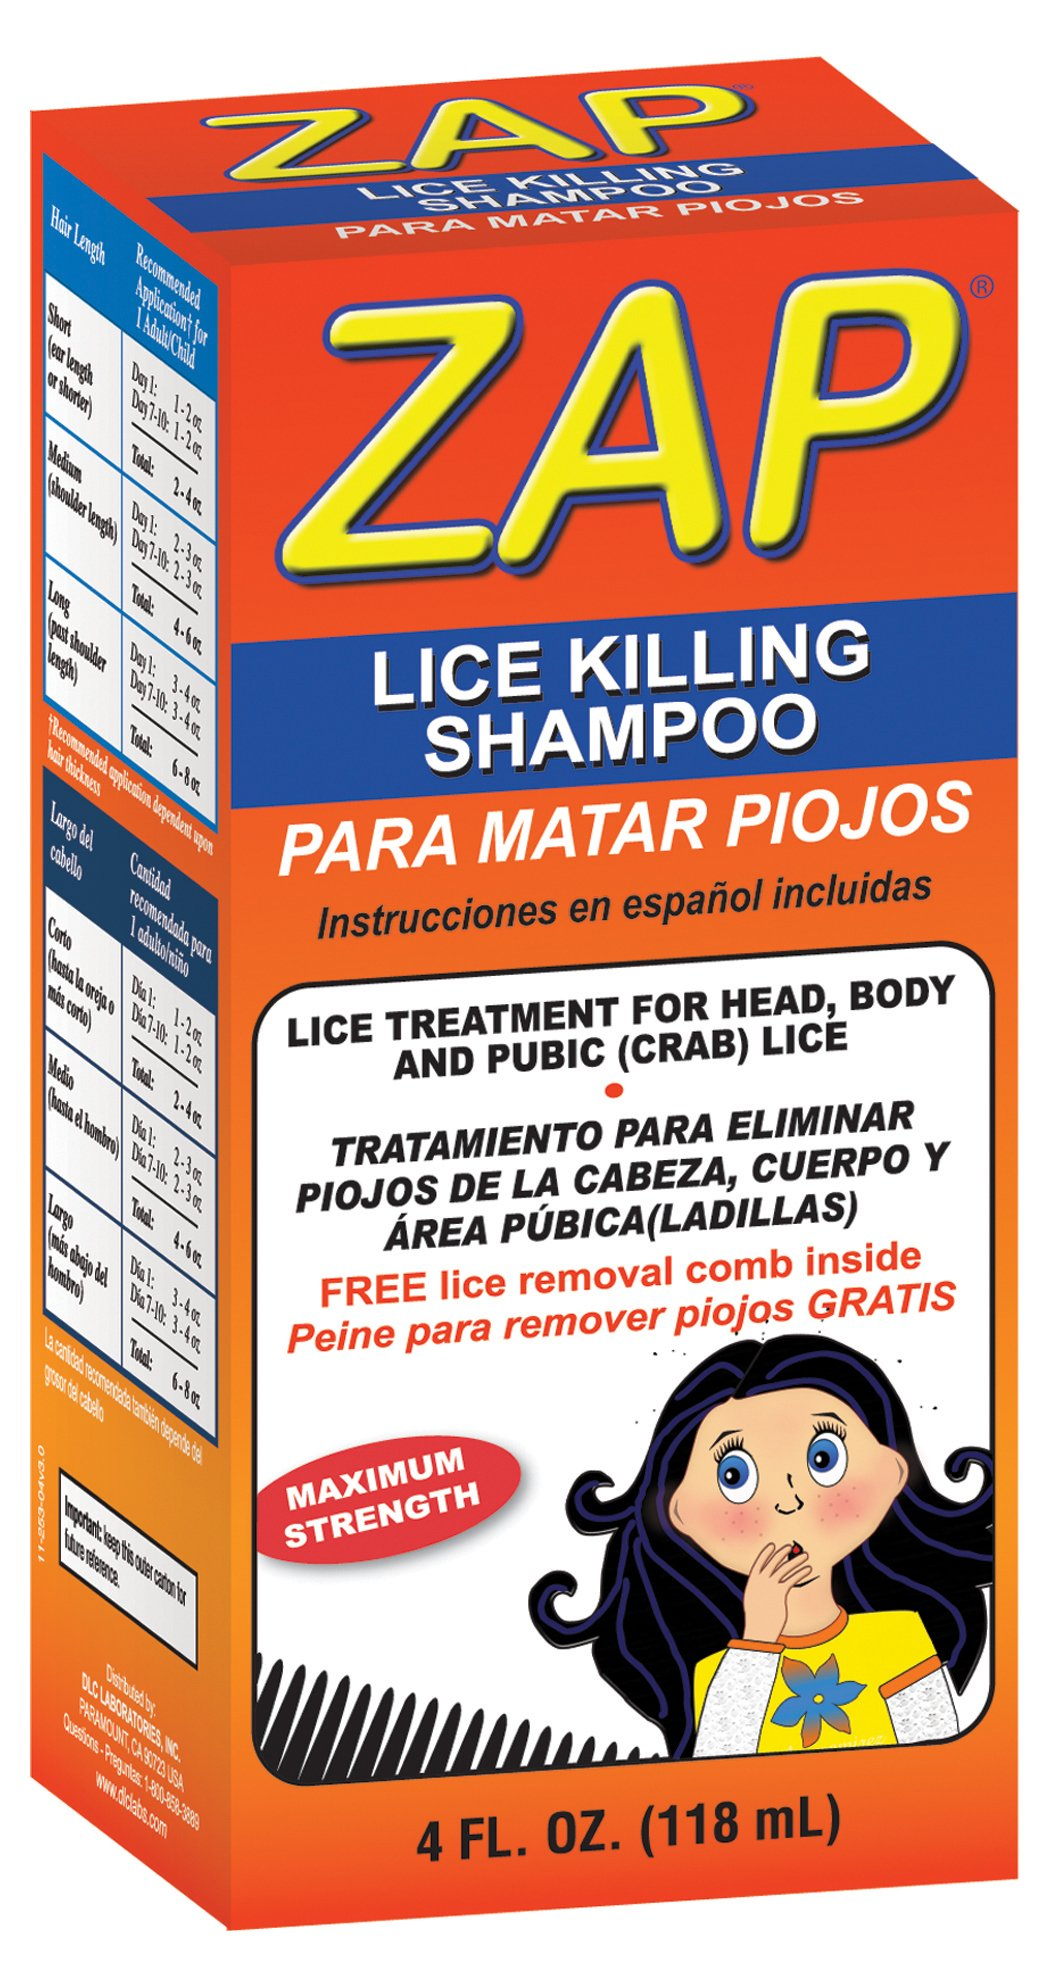 ZAP® Liquid Lice Killing Shampoo/Made in USA/For Adults and Children Ages 2 and Up/4 FL. OZ.